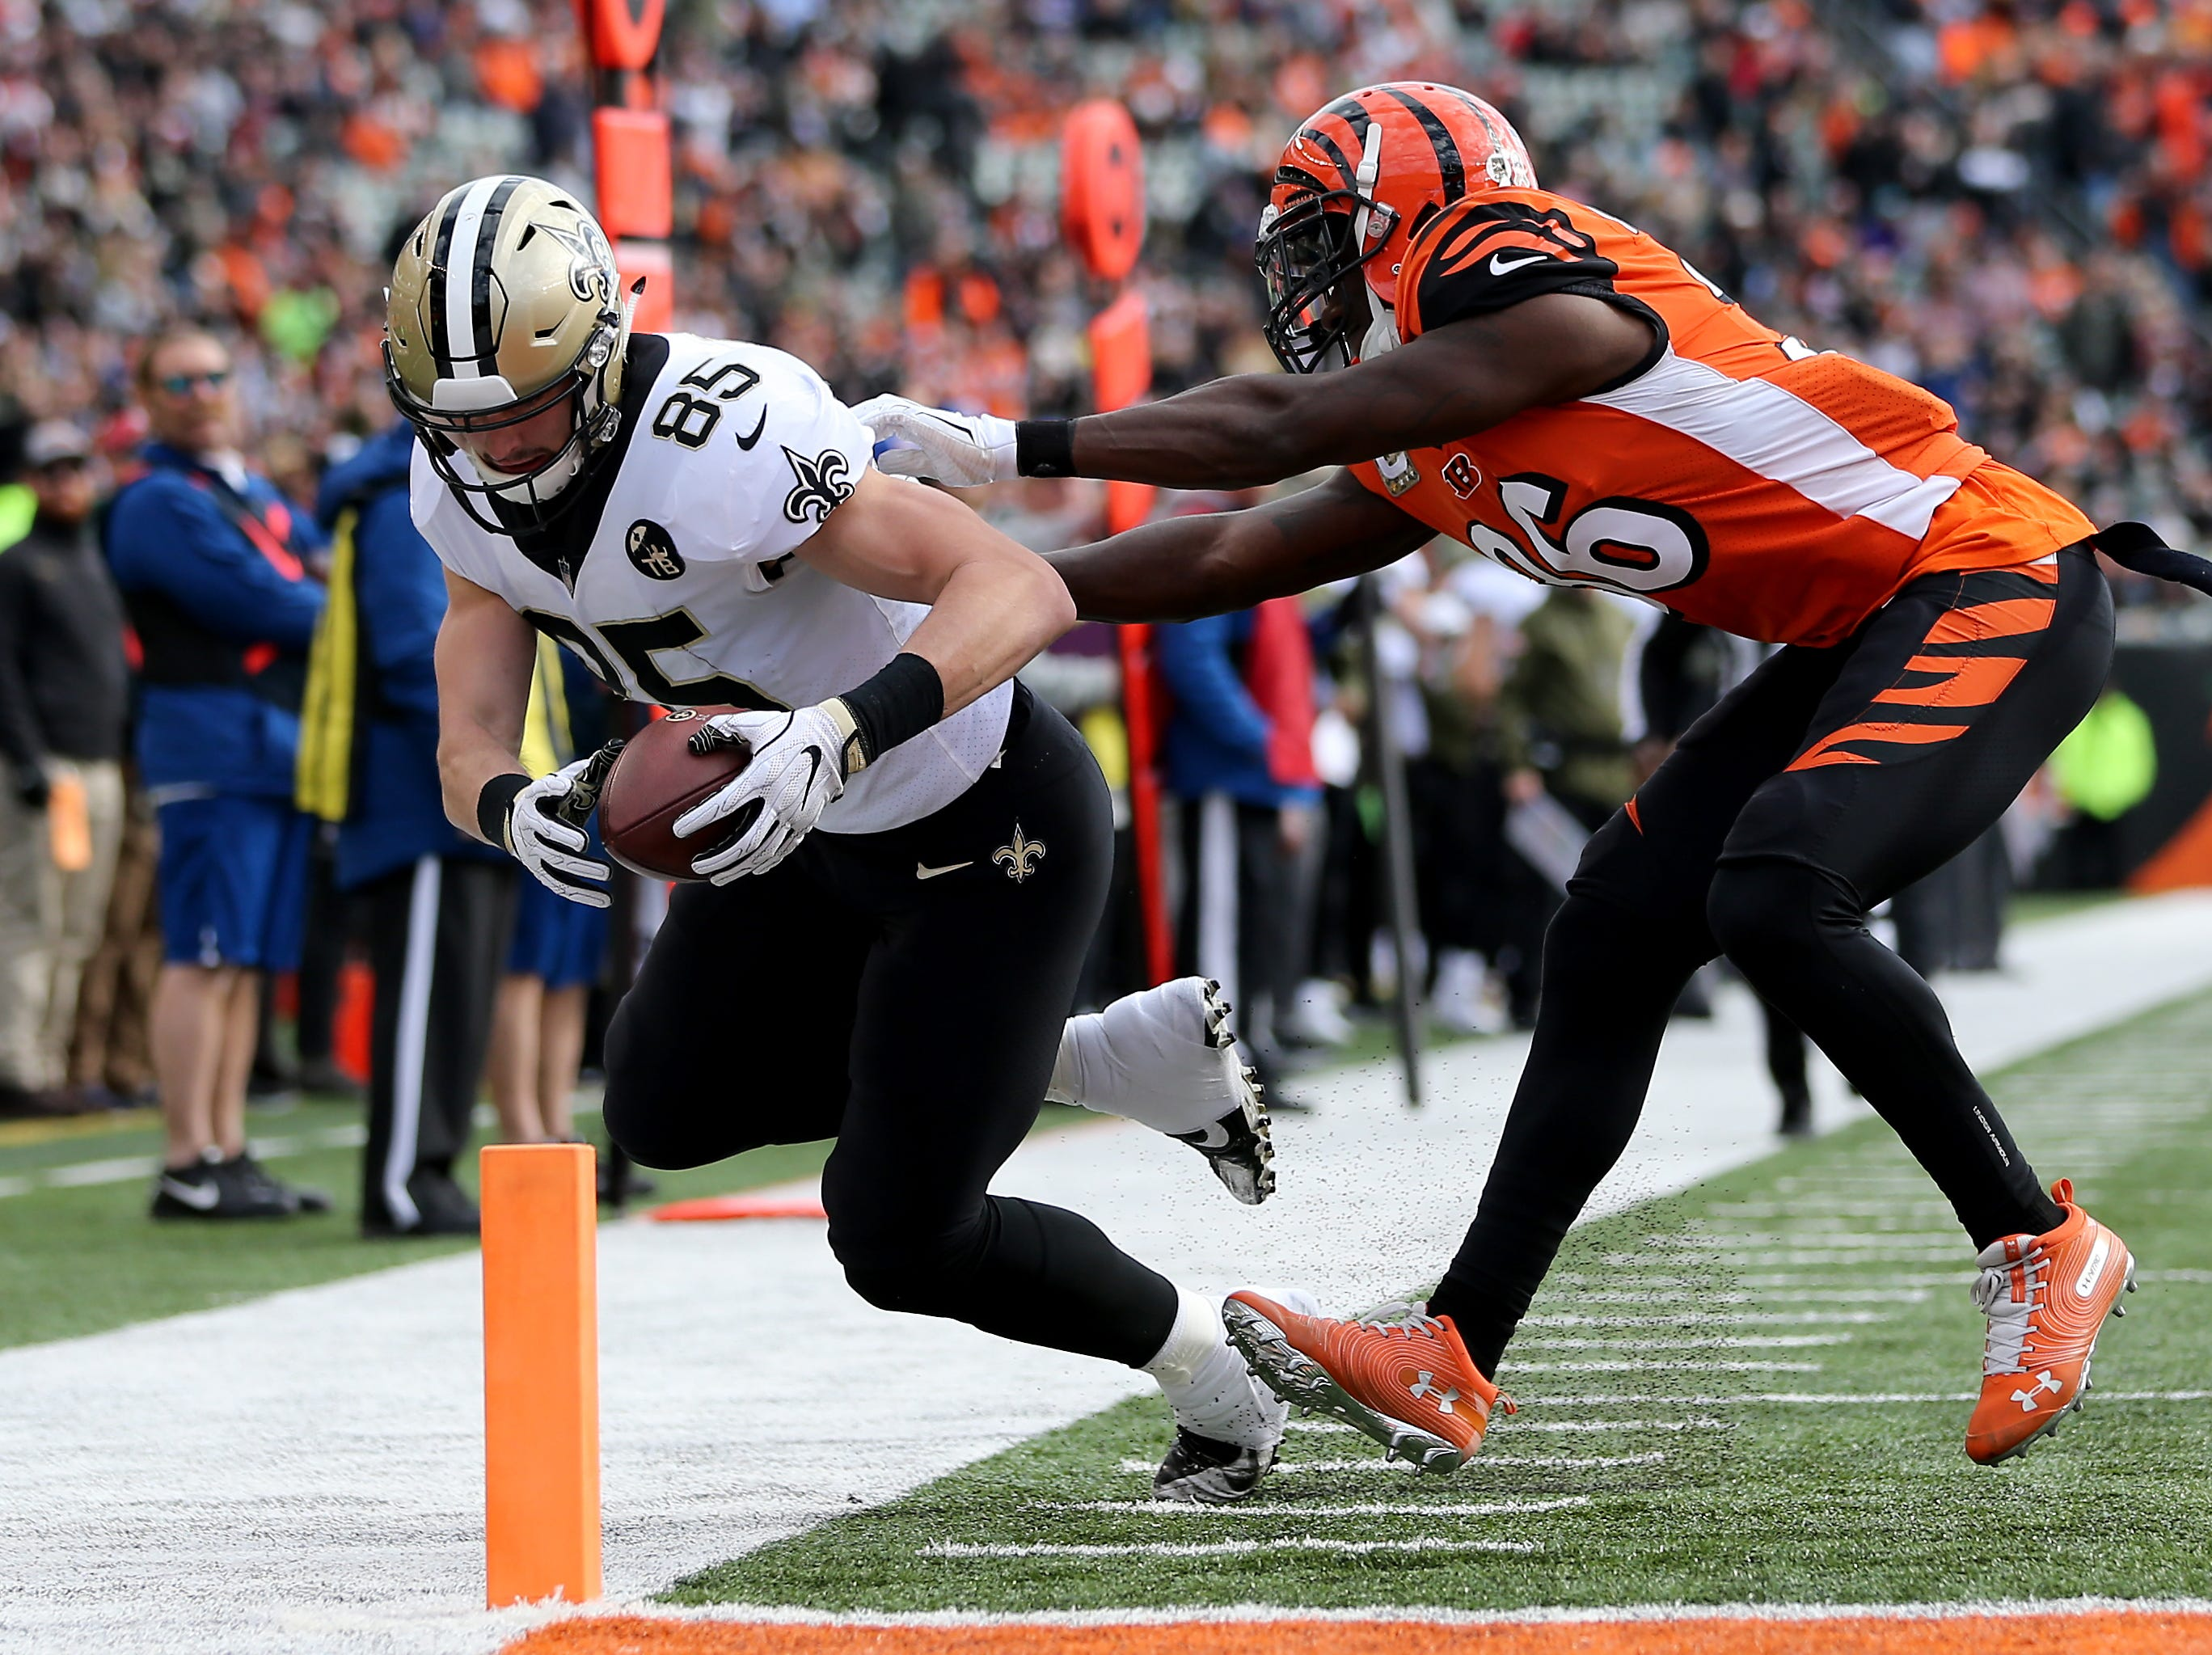 New Orleans Saints tight end Dan Arnold (85) is pushed out of bounds by Cincinnati Bengals strong safety Shawn Williams (36) in the second quarter of a Week 10 NFL game between the New Orleans Saints and the Cincinnati Bengals, Sunday, Nov. 11, 2018, at Paul Brown Stadium in Cincinnati.